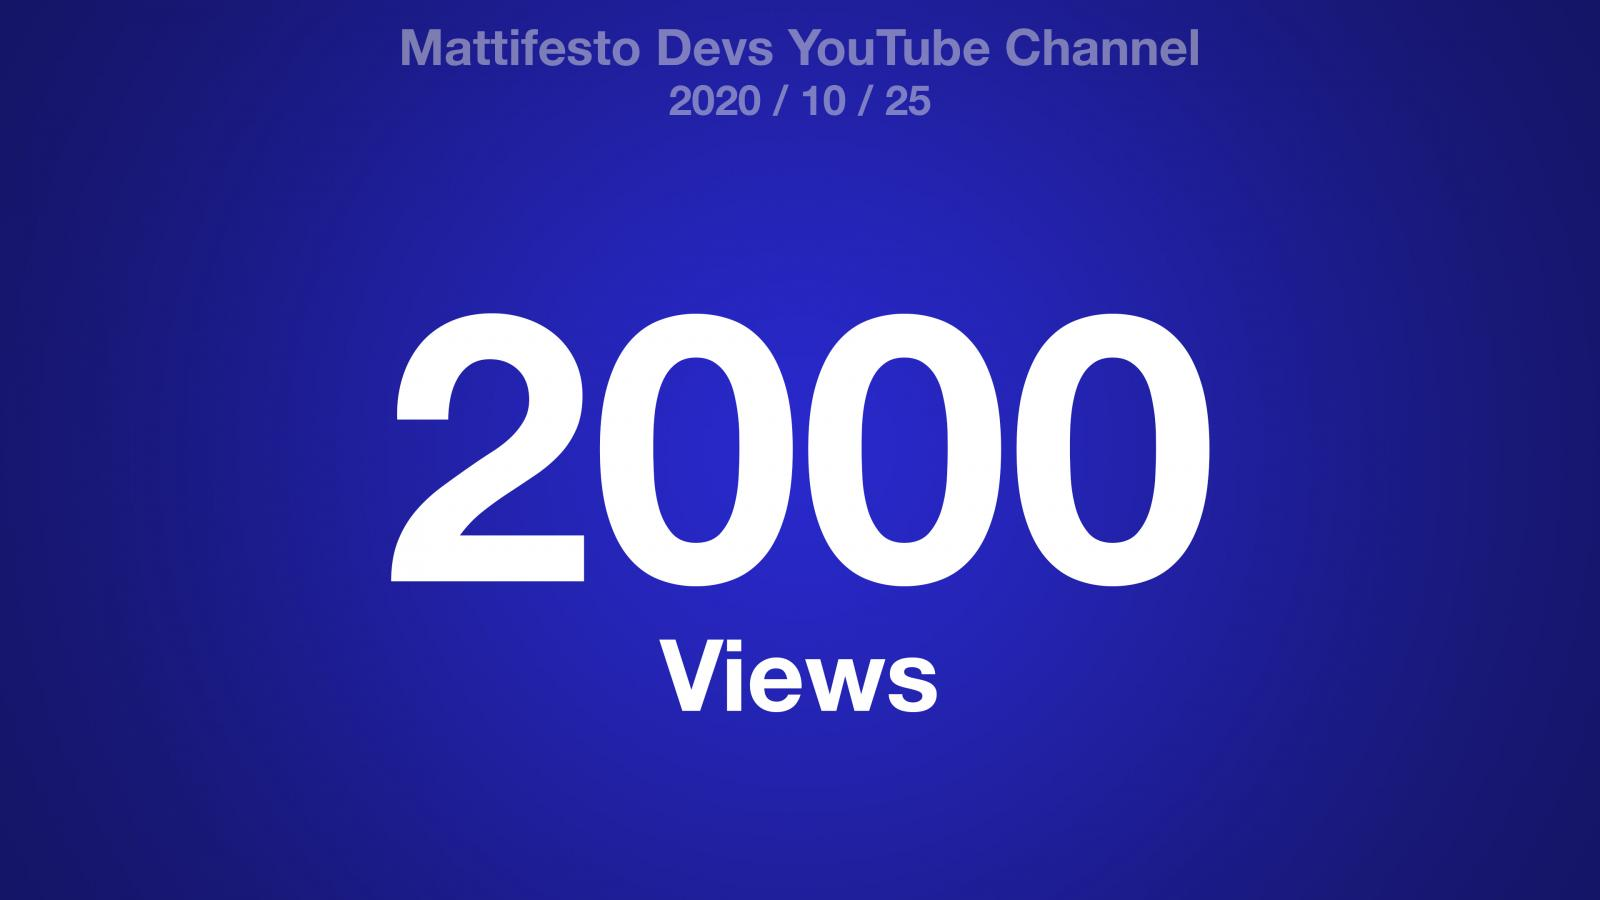 A blue radial gradient with the text: Mattifesto Devs YouTube Channel 2020/10/25 2000 Views